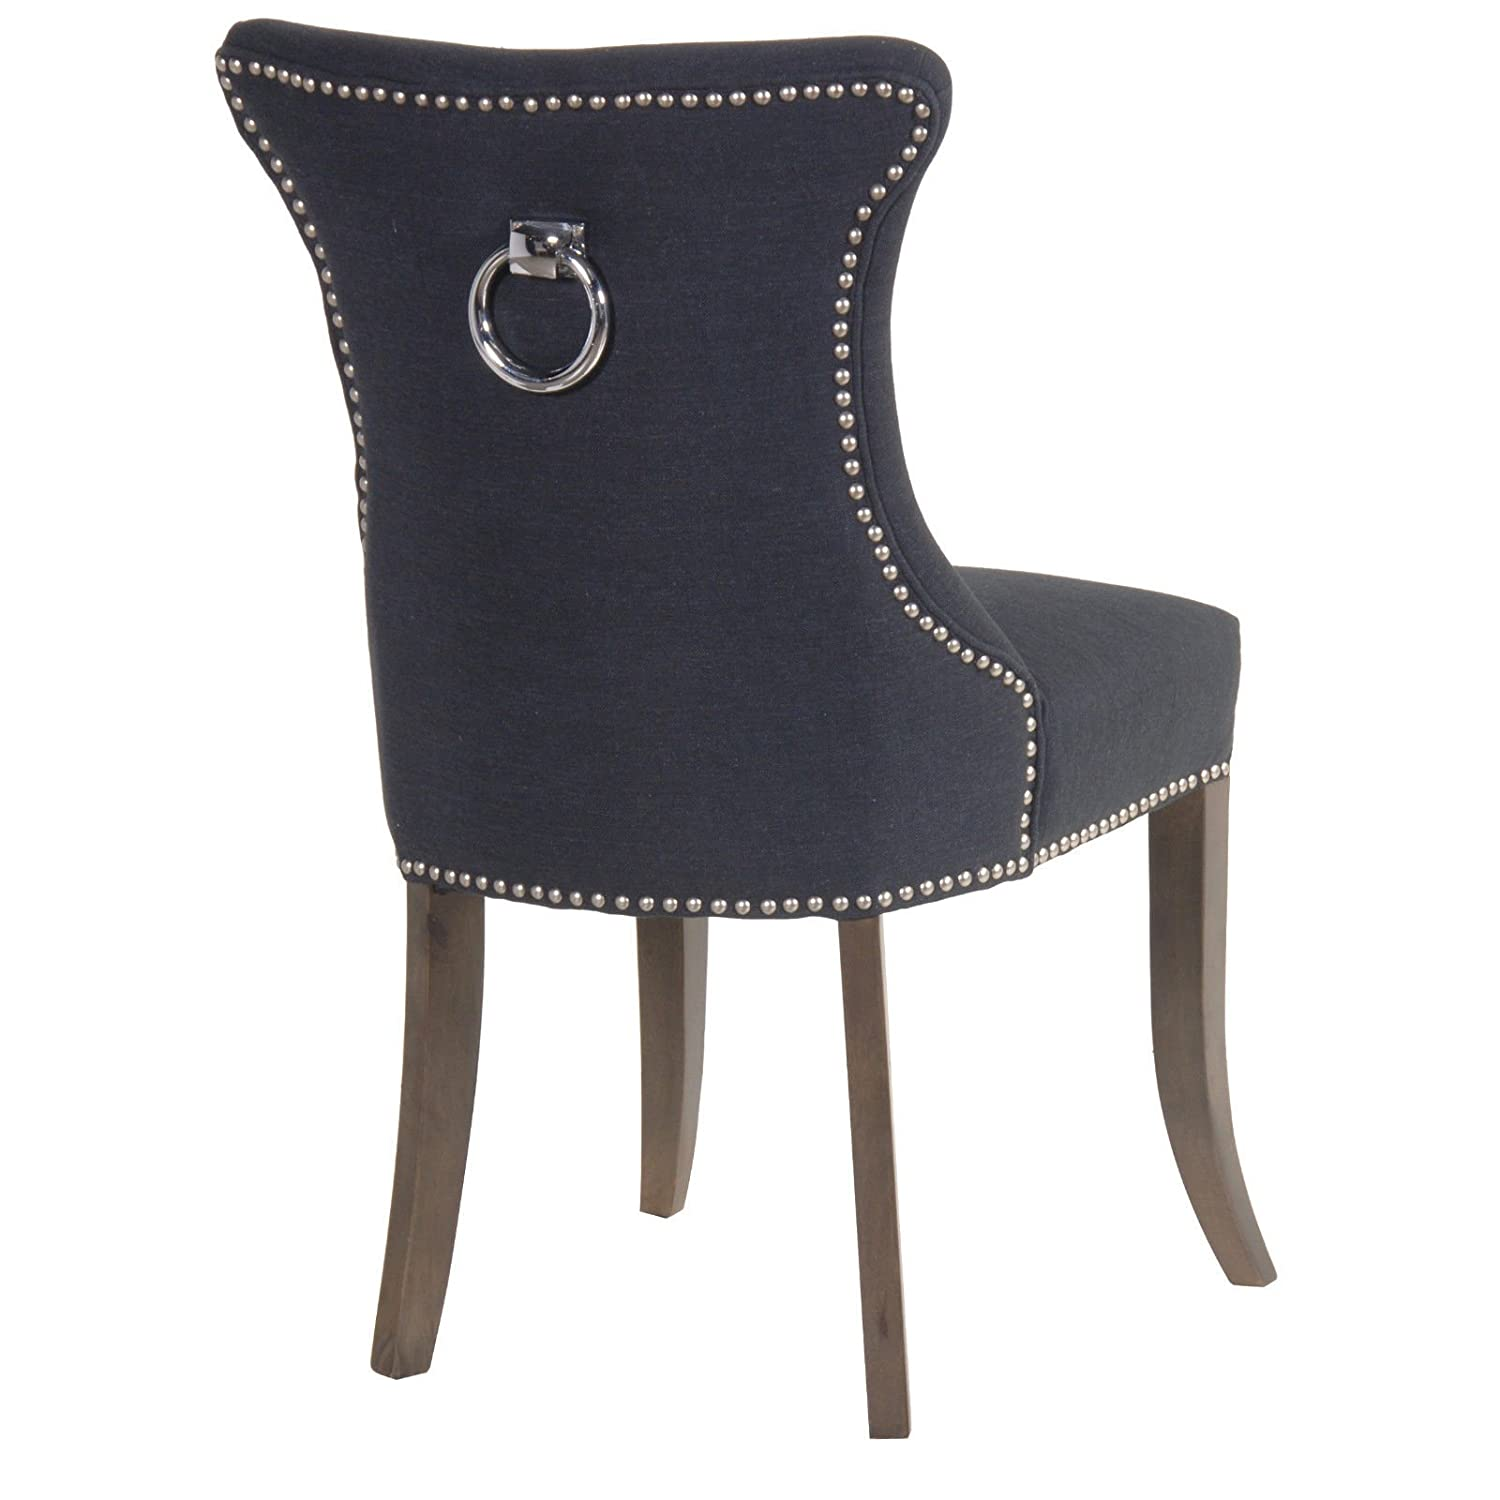 Studded Dining Chairs With D Rings